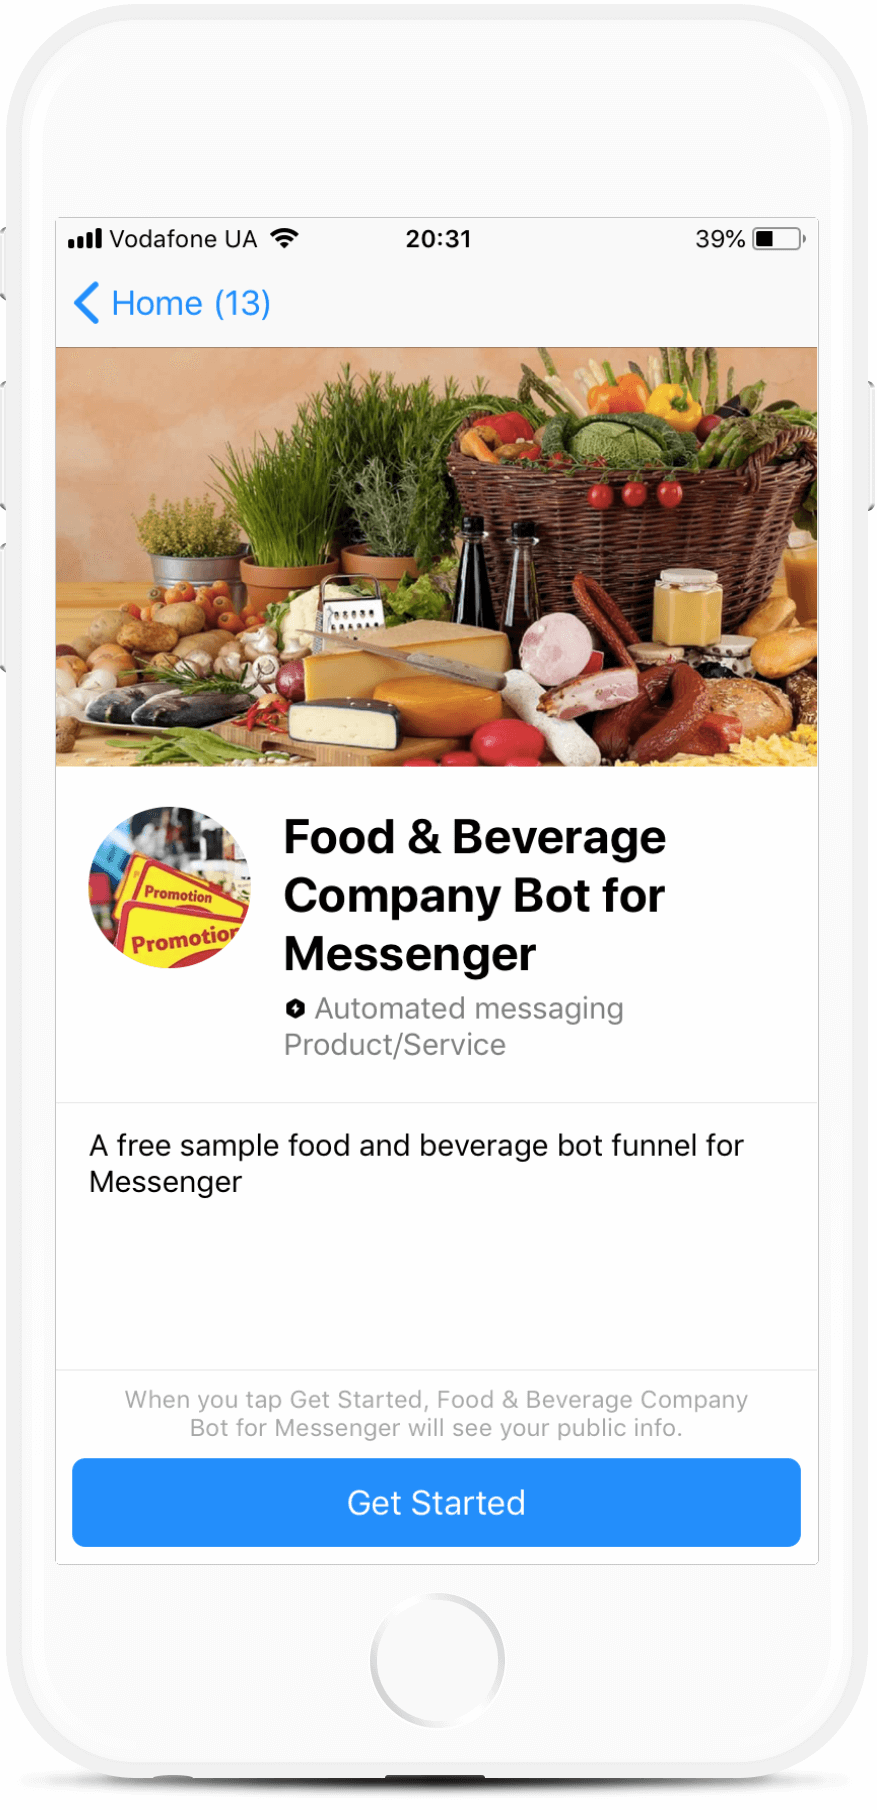 Food & Beverage Company Bot for Messenger